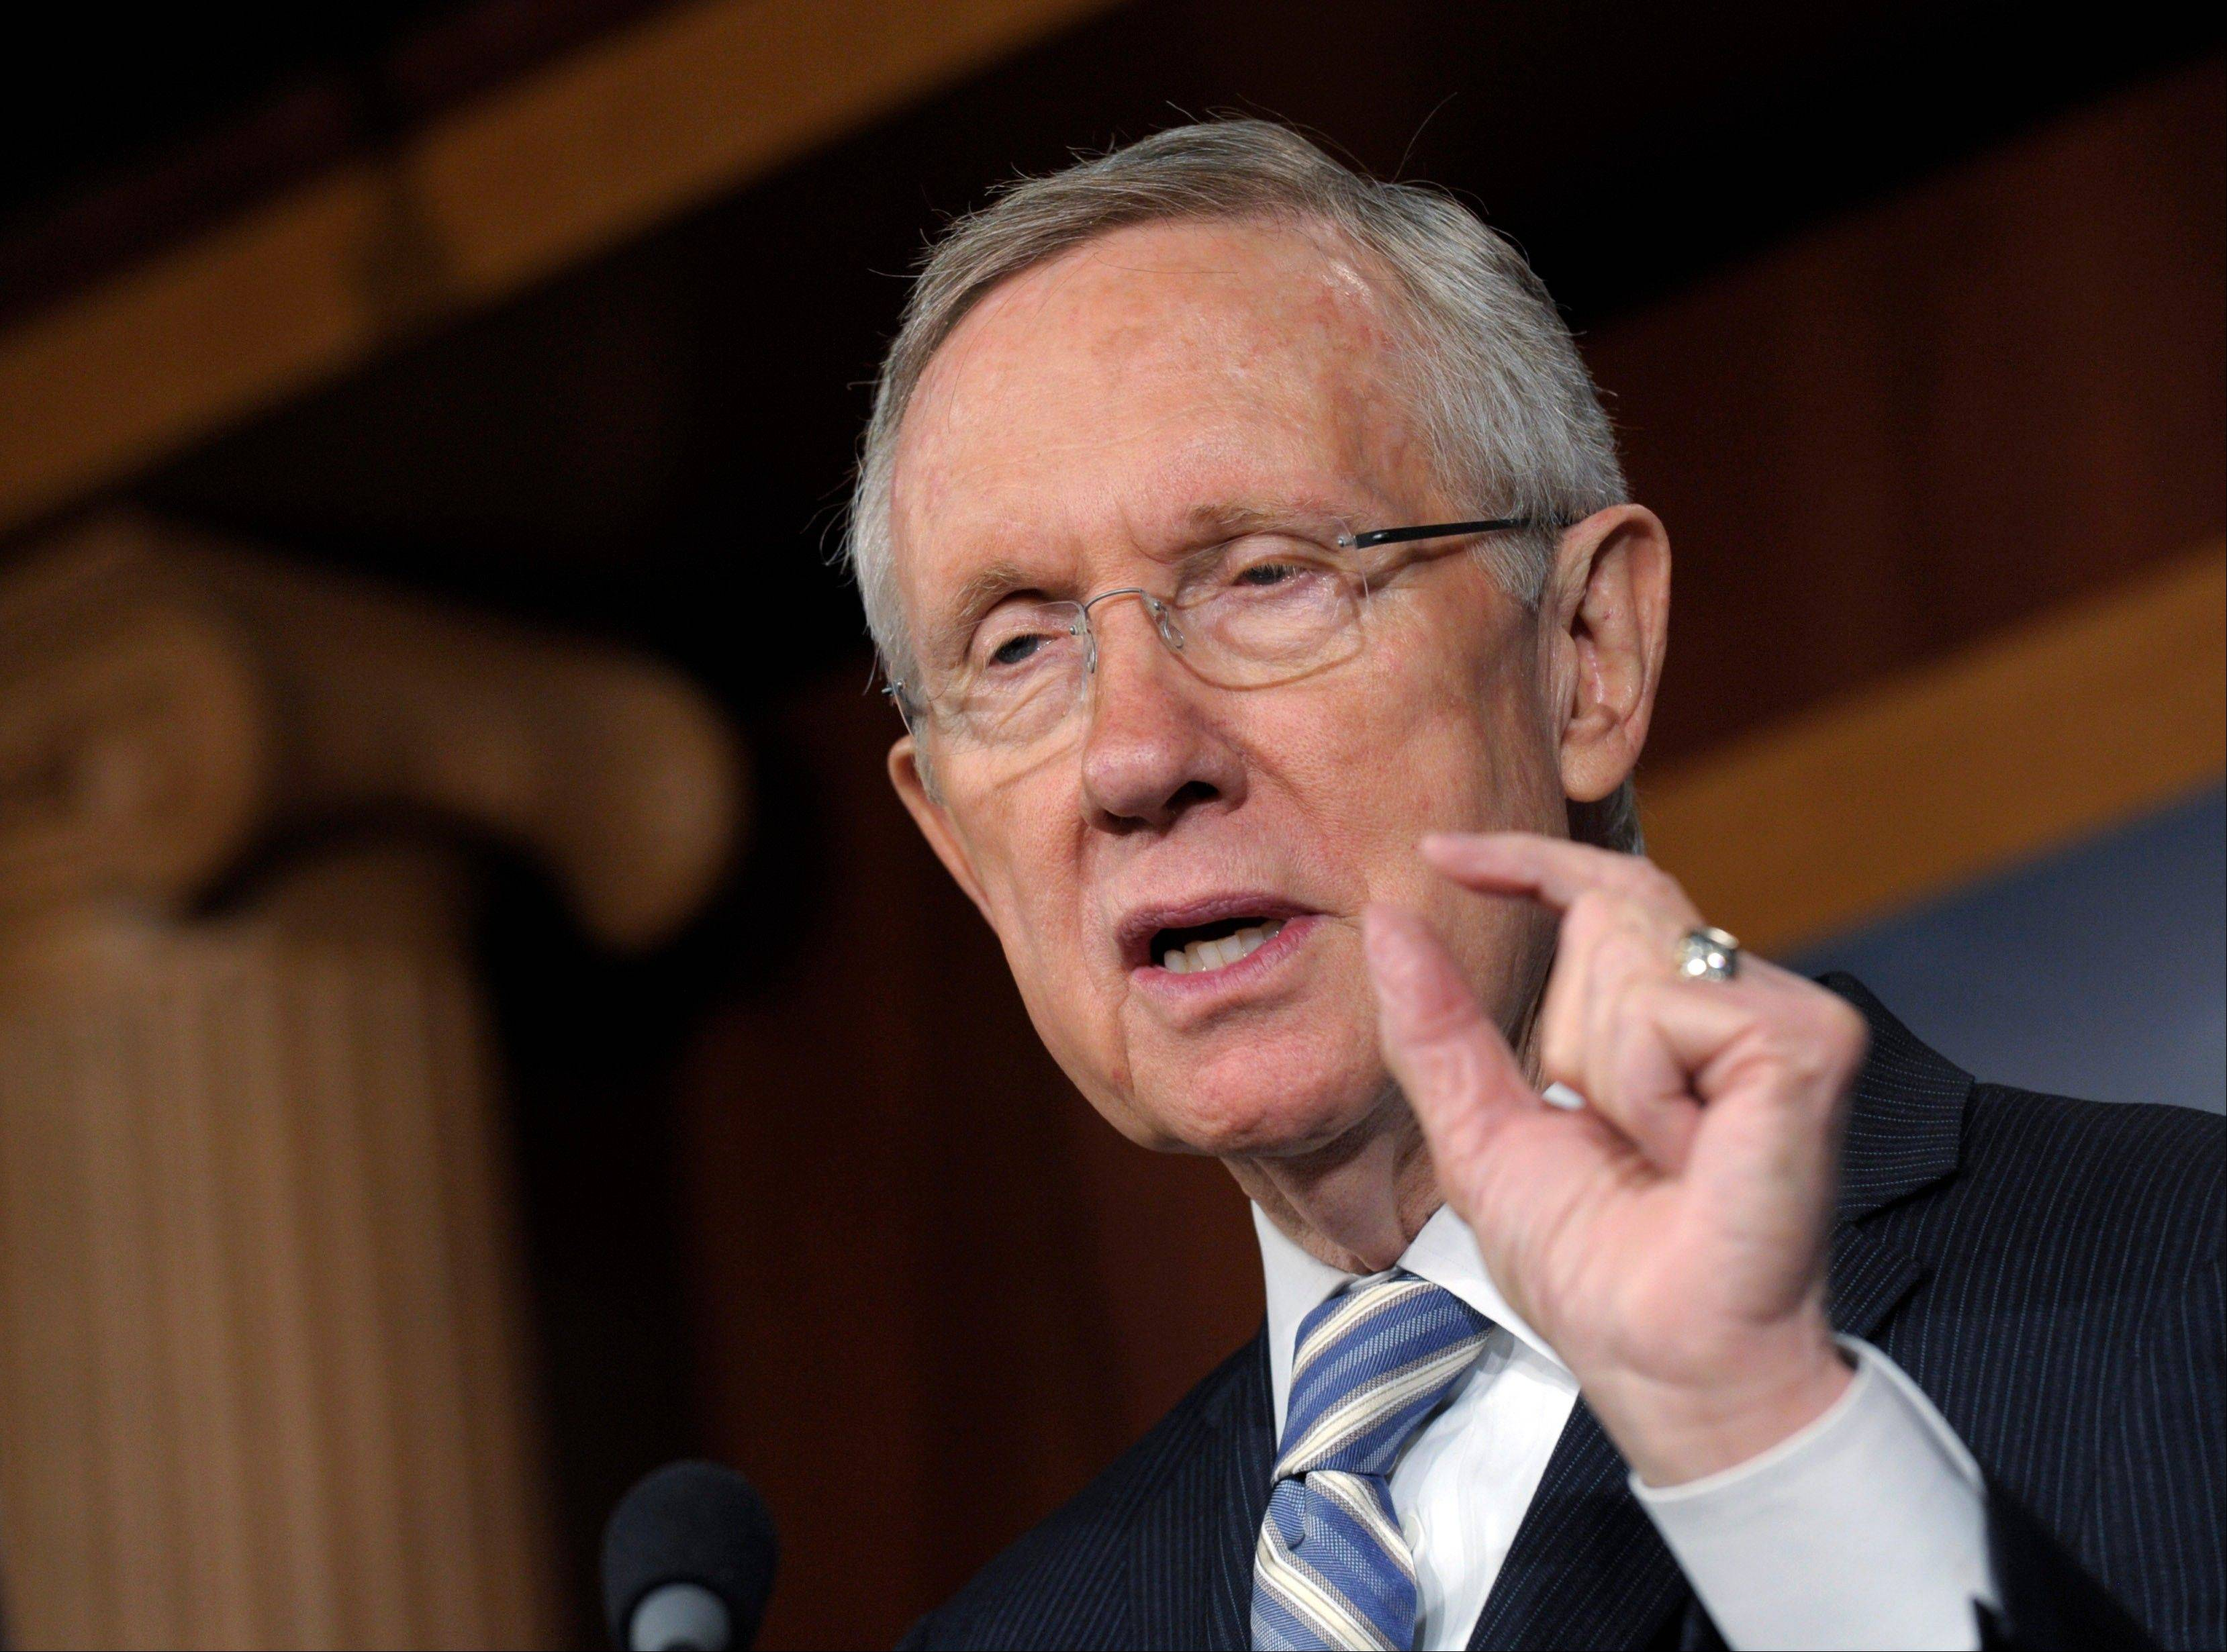 Senate Majority Leader Harry Reid, a Nevada Democrat, gestures Wednesday as he discusses Tuesday's election results during a news conference on Capitol Hill in Washington.